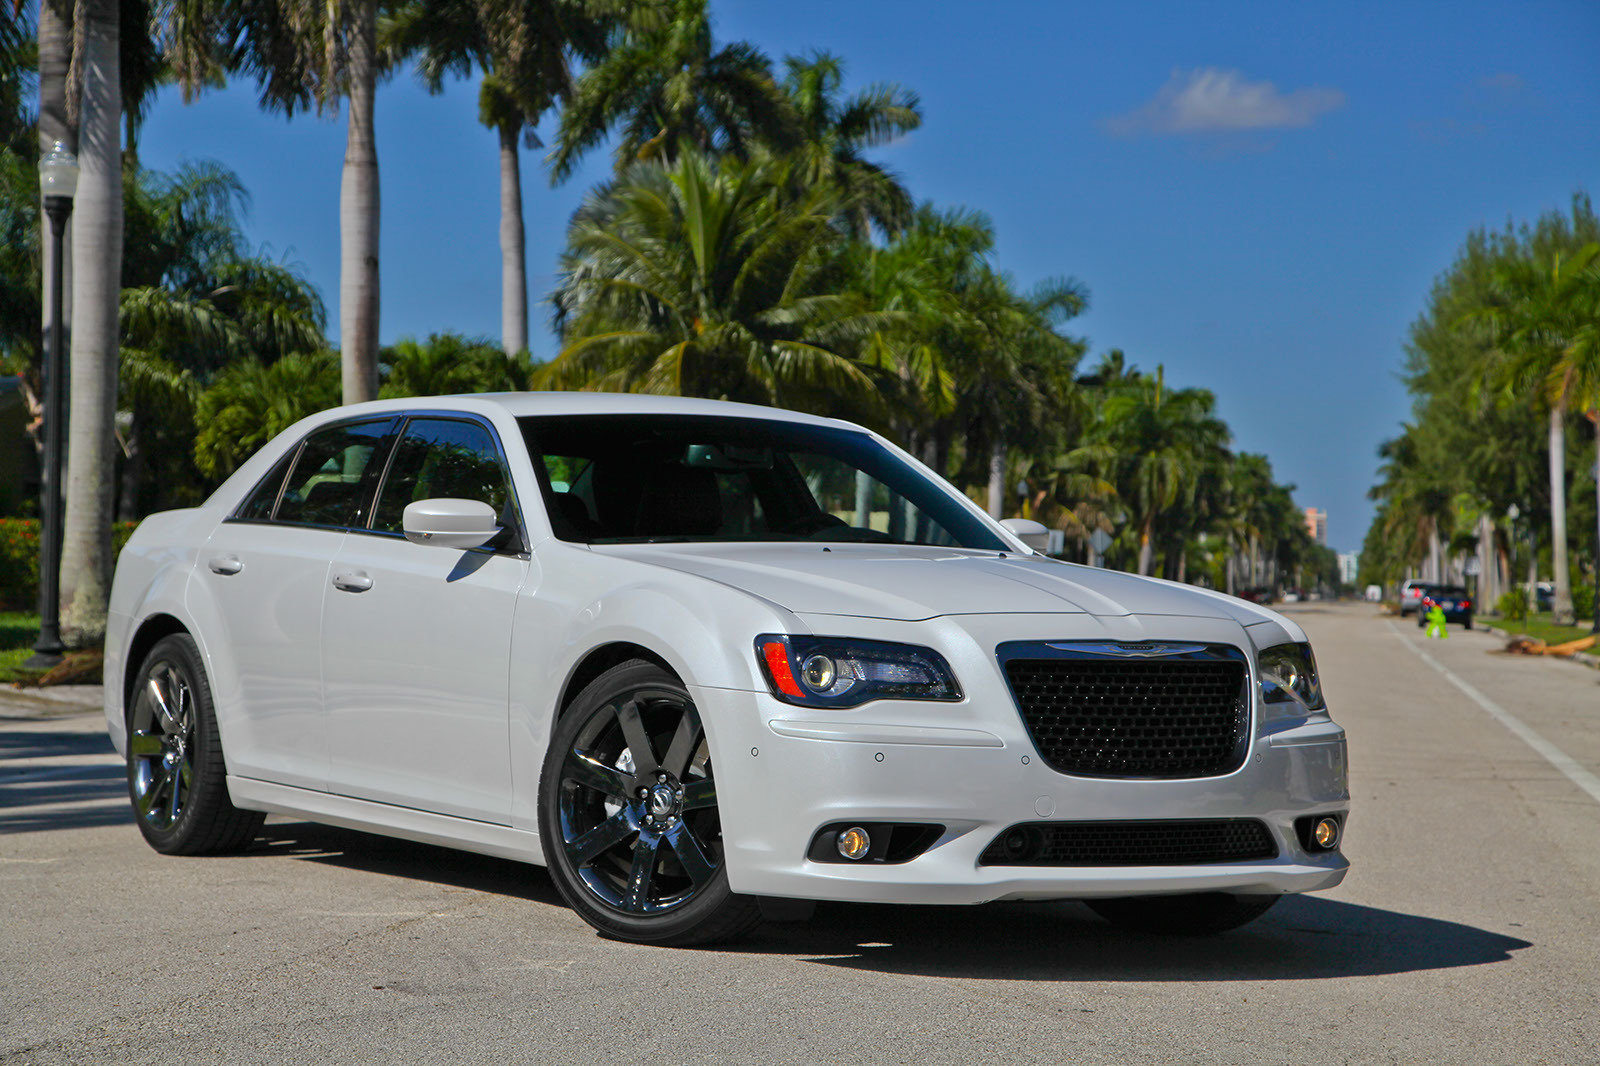 2013 chrysler 300 srt8 picture 528580 car review top speed. Cars Review. Best American Auto & Cars Review